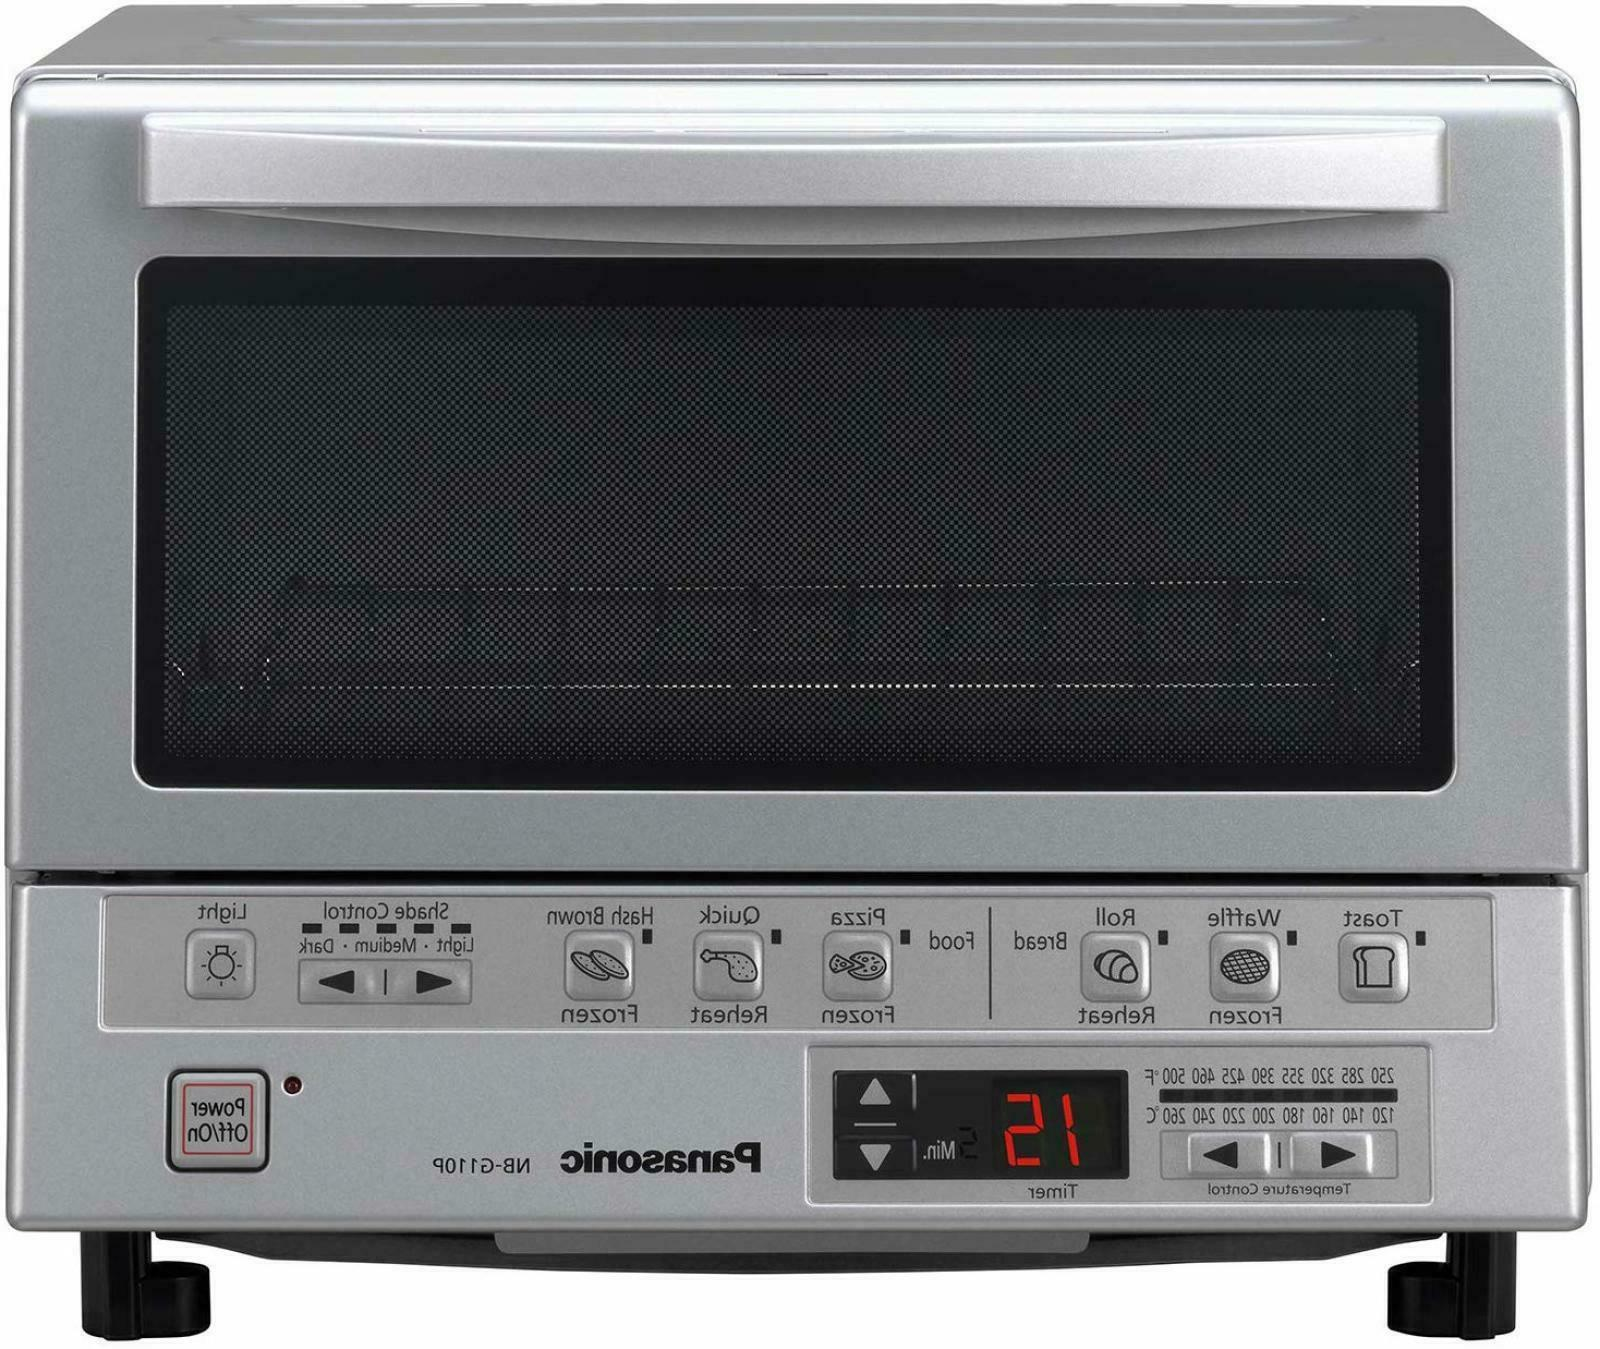 Panasonic Toaster Oven NB-G110P FlashXpress with Double Infr